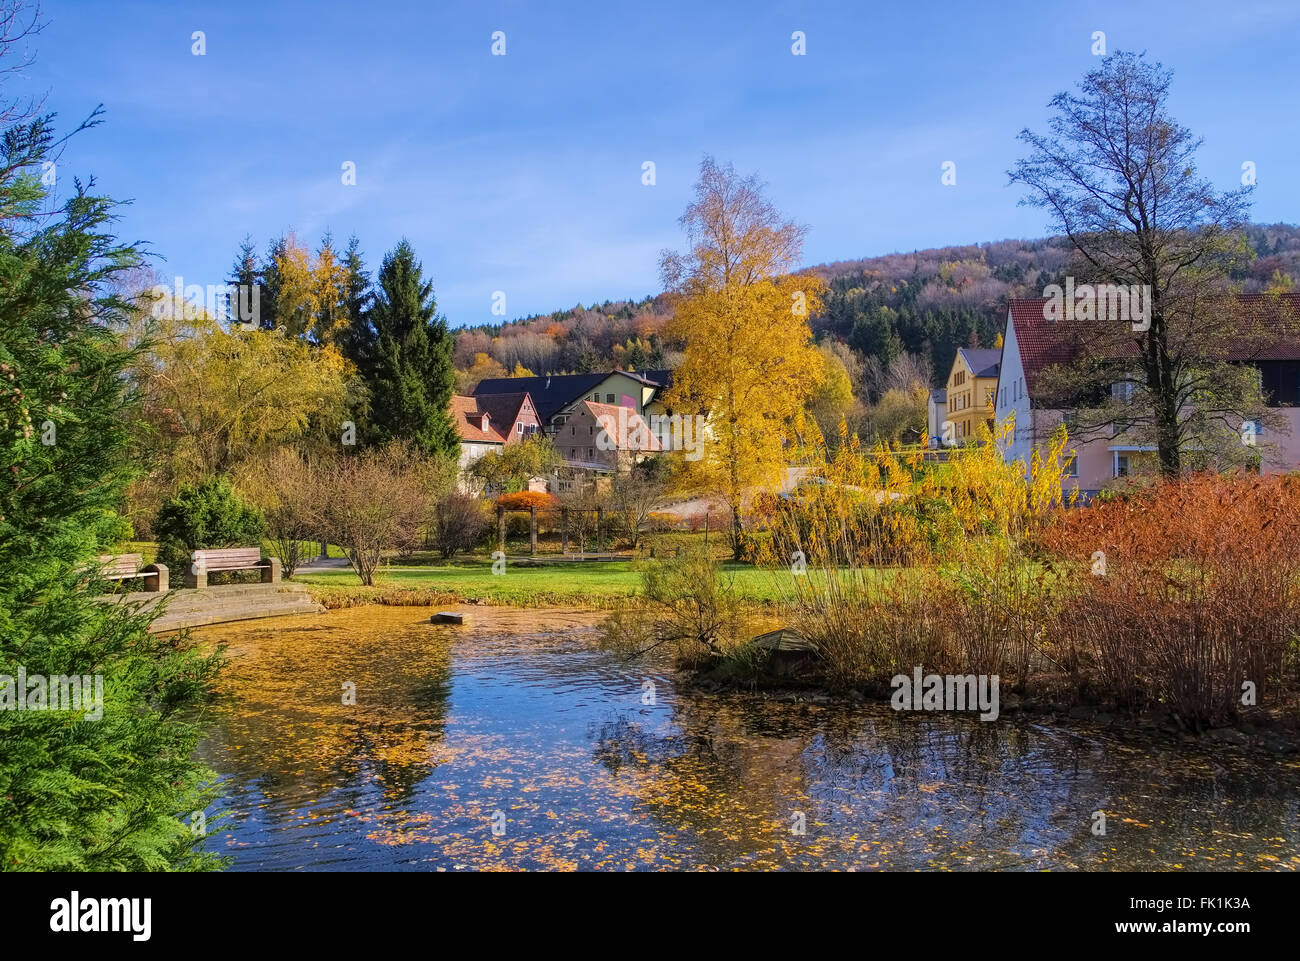 Jonsdorf Park im Herbst im Zittauer Gebirge - Jonsdorf Park in fall in Zittau Mountains Stock Photo